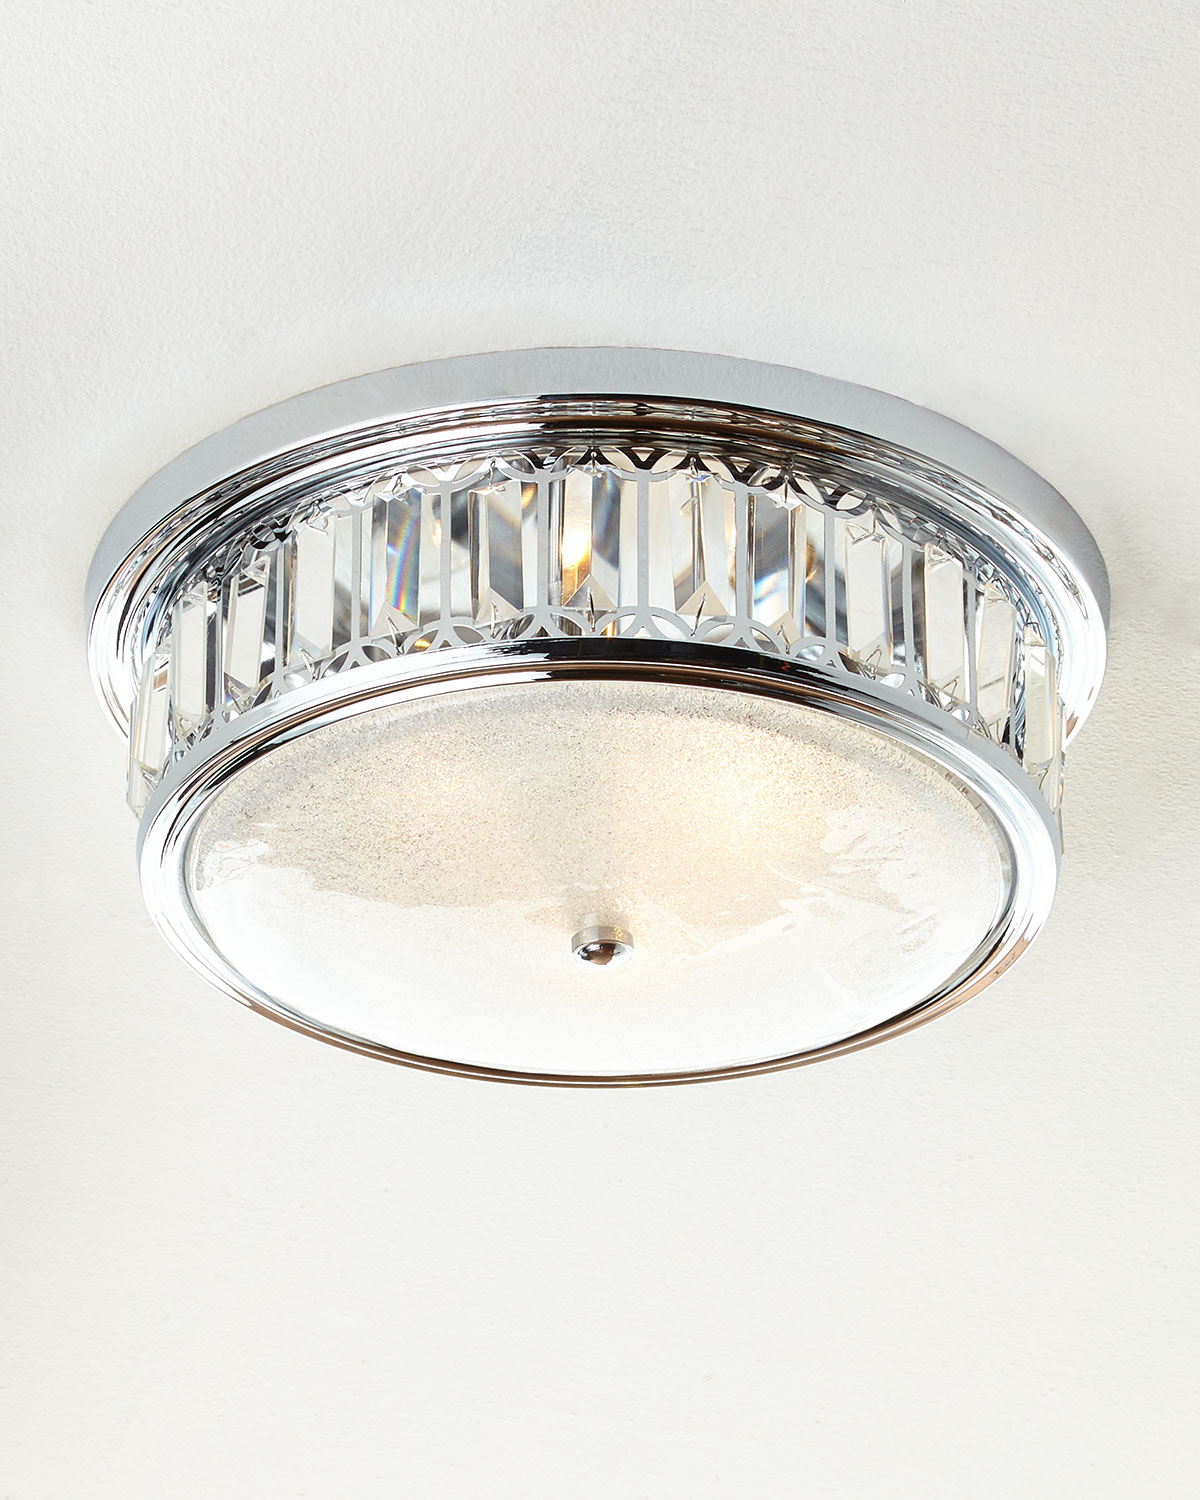 Silvery 3-Light Flush-Mount Ceiling Fixture | Neiman Marcus